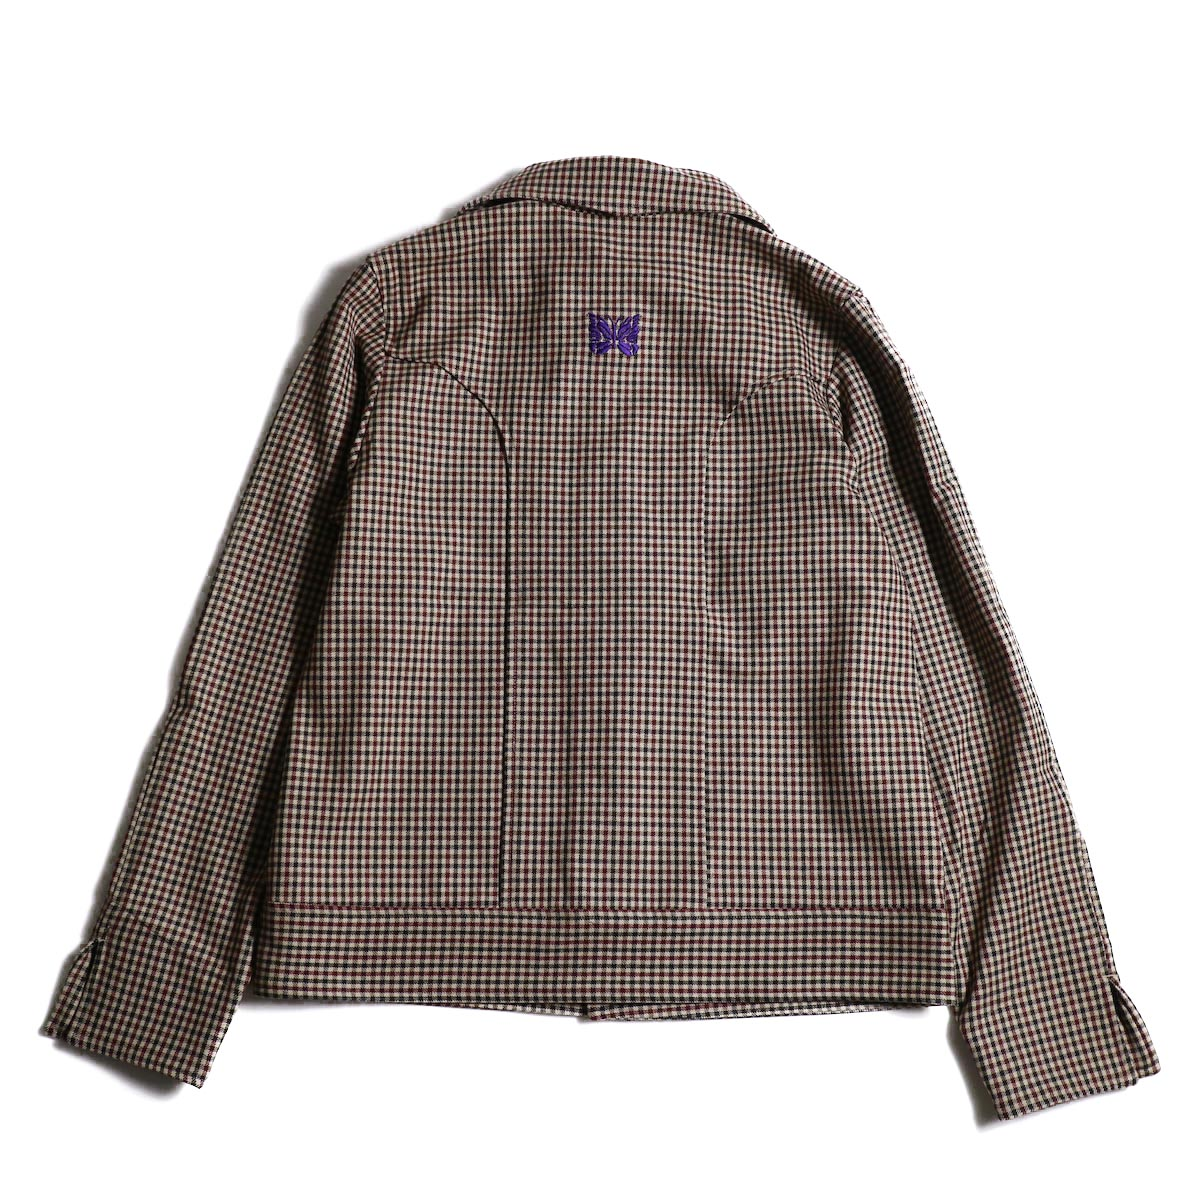 Needles / Cowboy Leisure Jacket -Gunclub Plaid (Bordeaux)背面